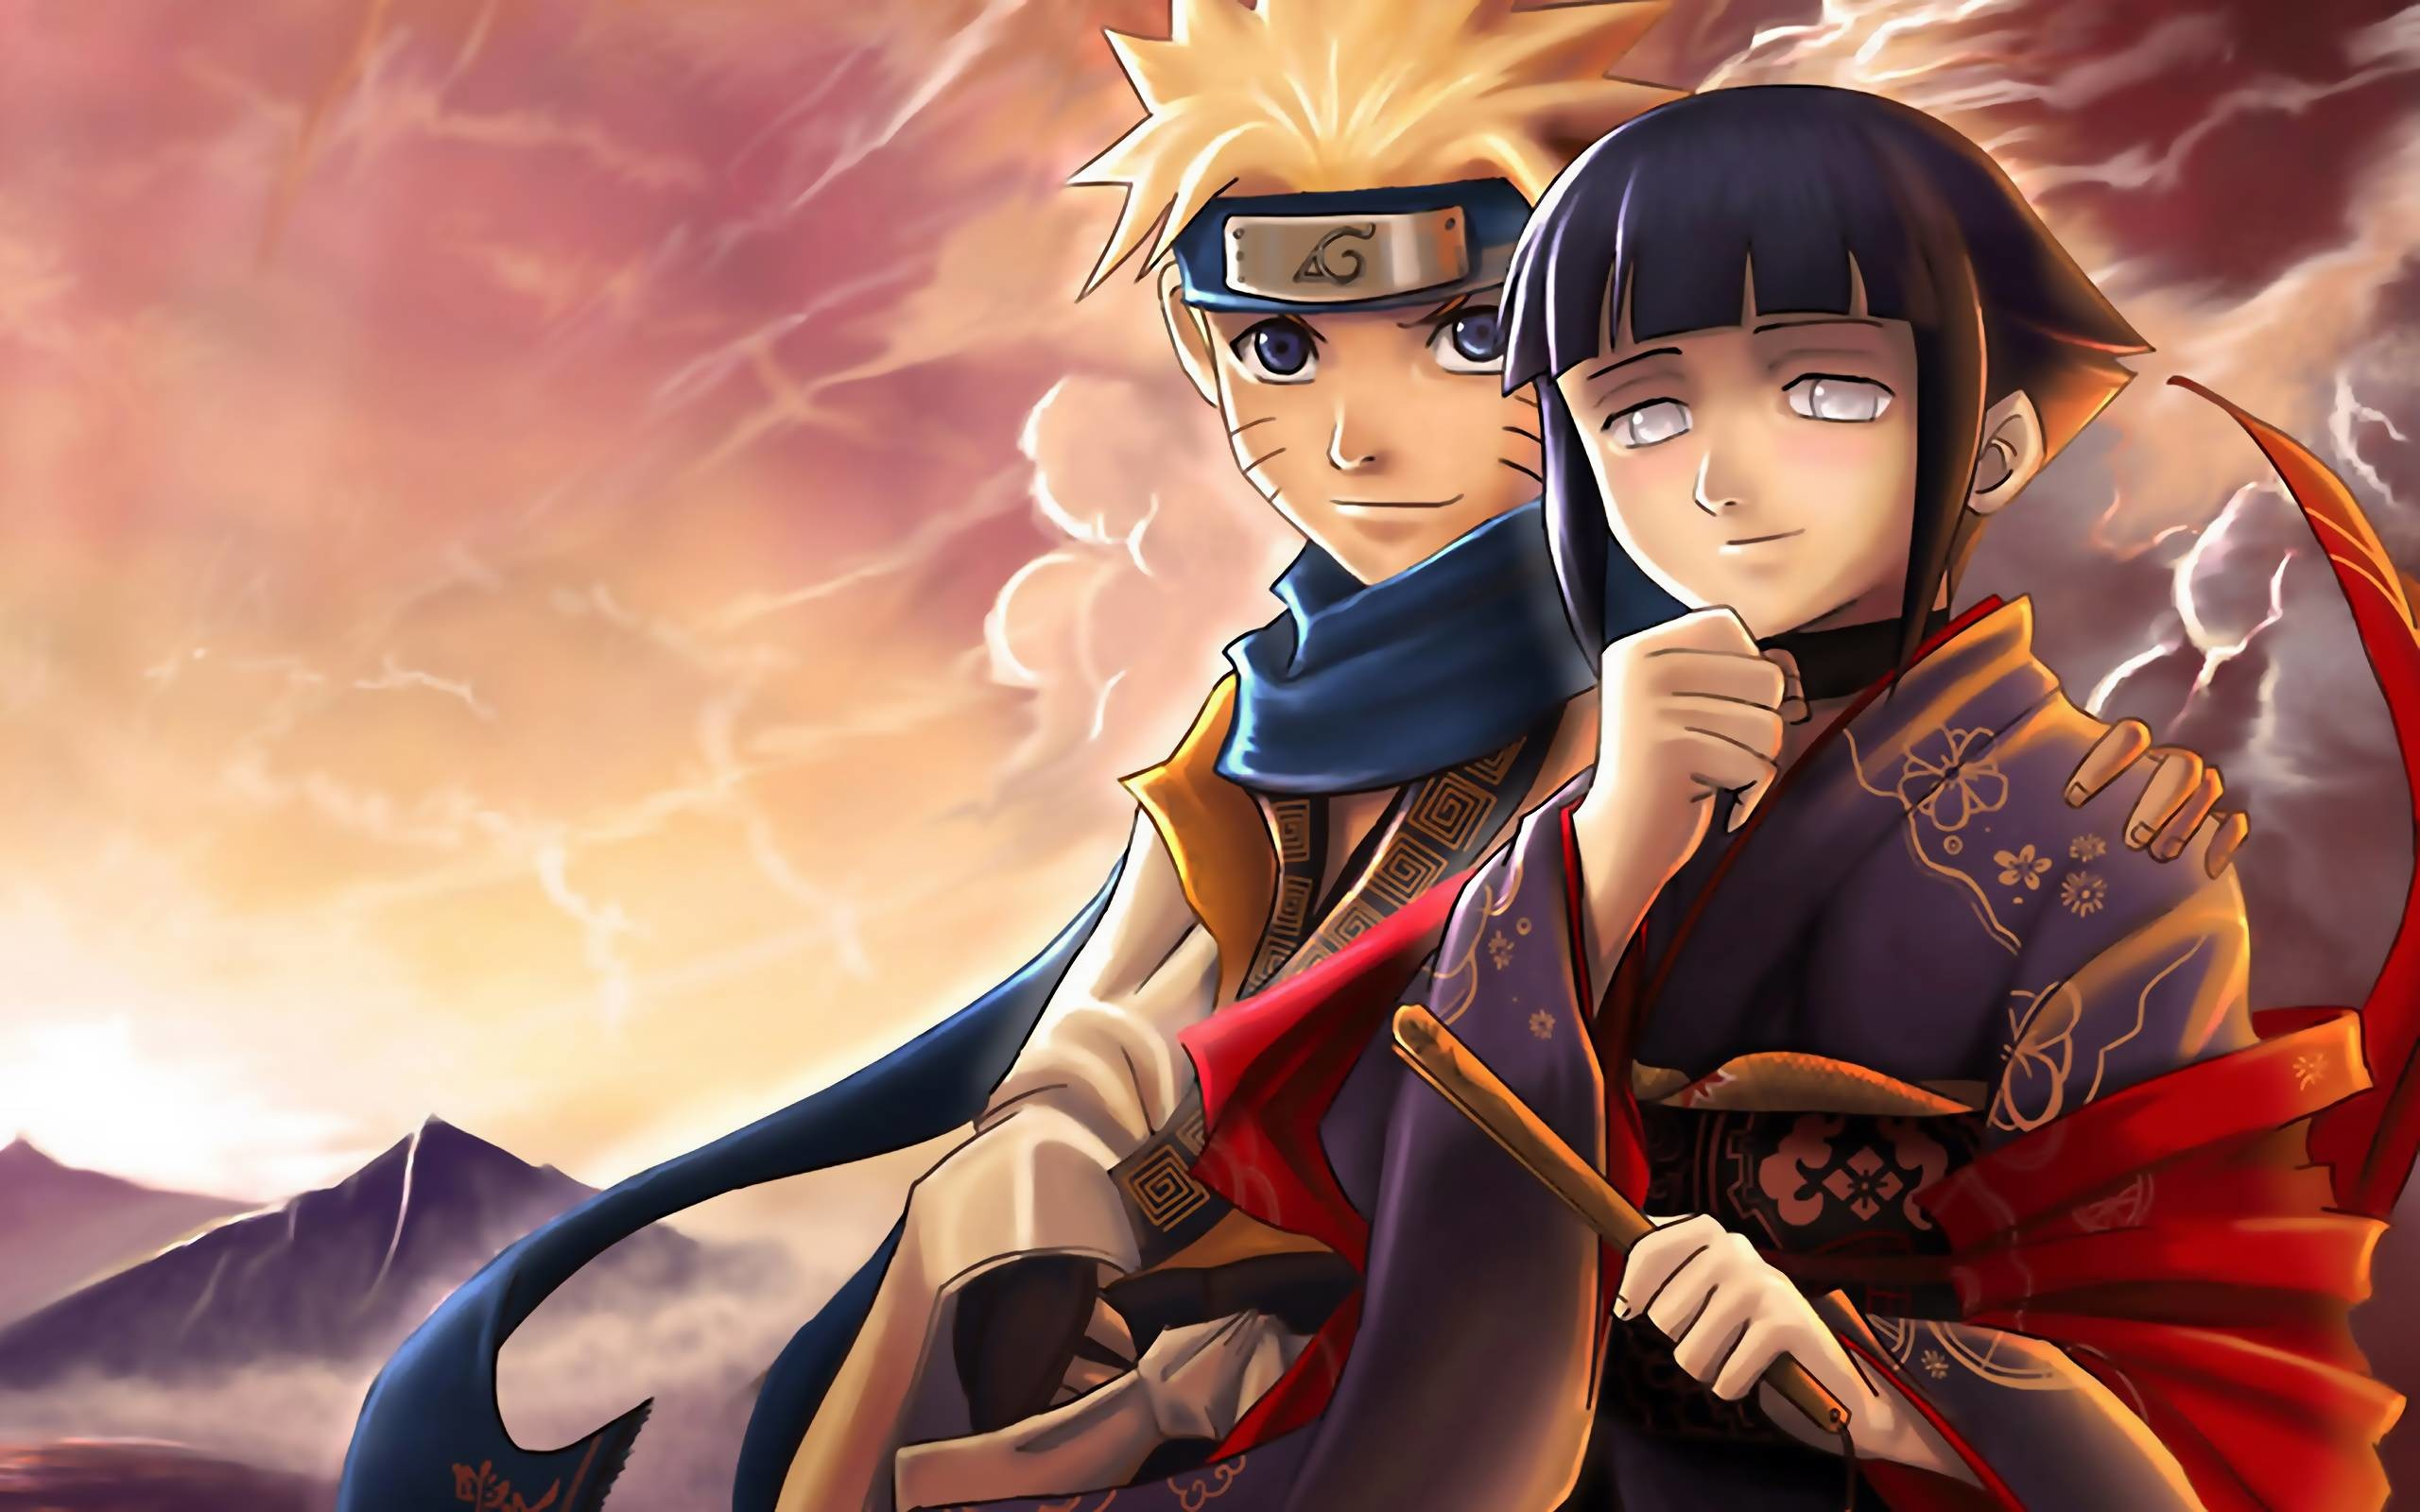 2560x1600 Naruto Hinata HD Wallpaper #136 Wallpaper | Viewnewallpaper.